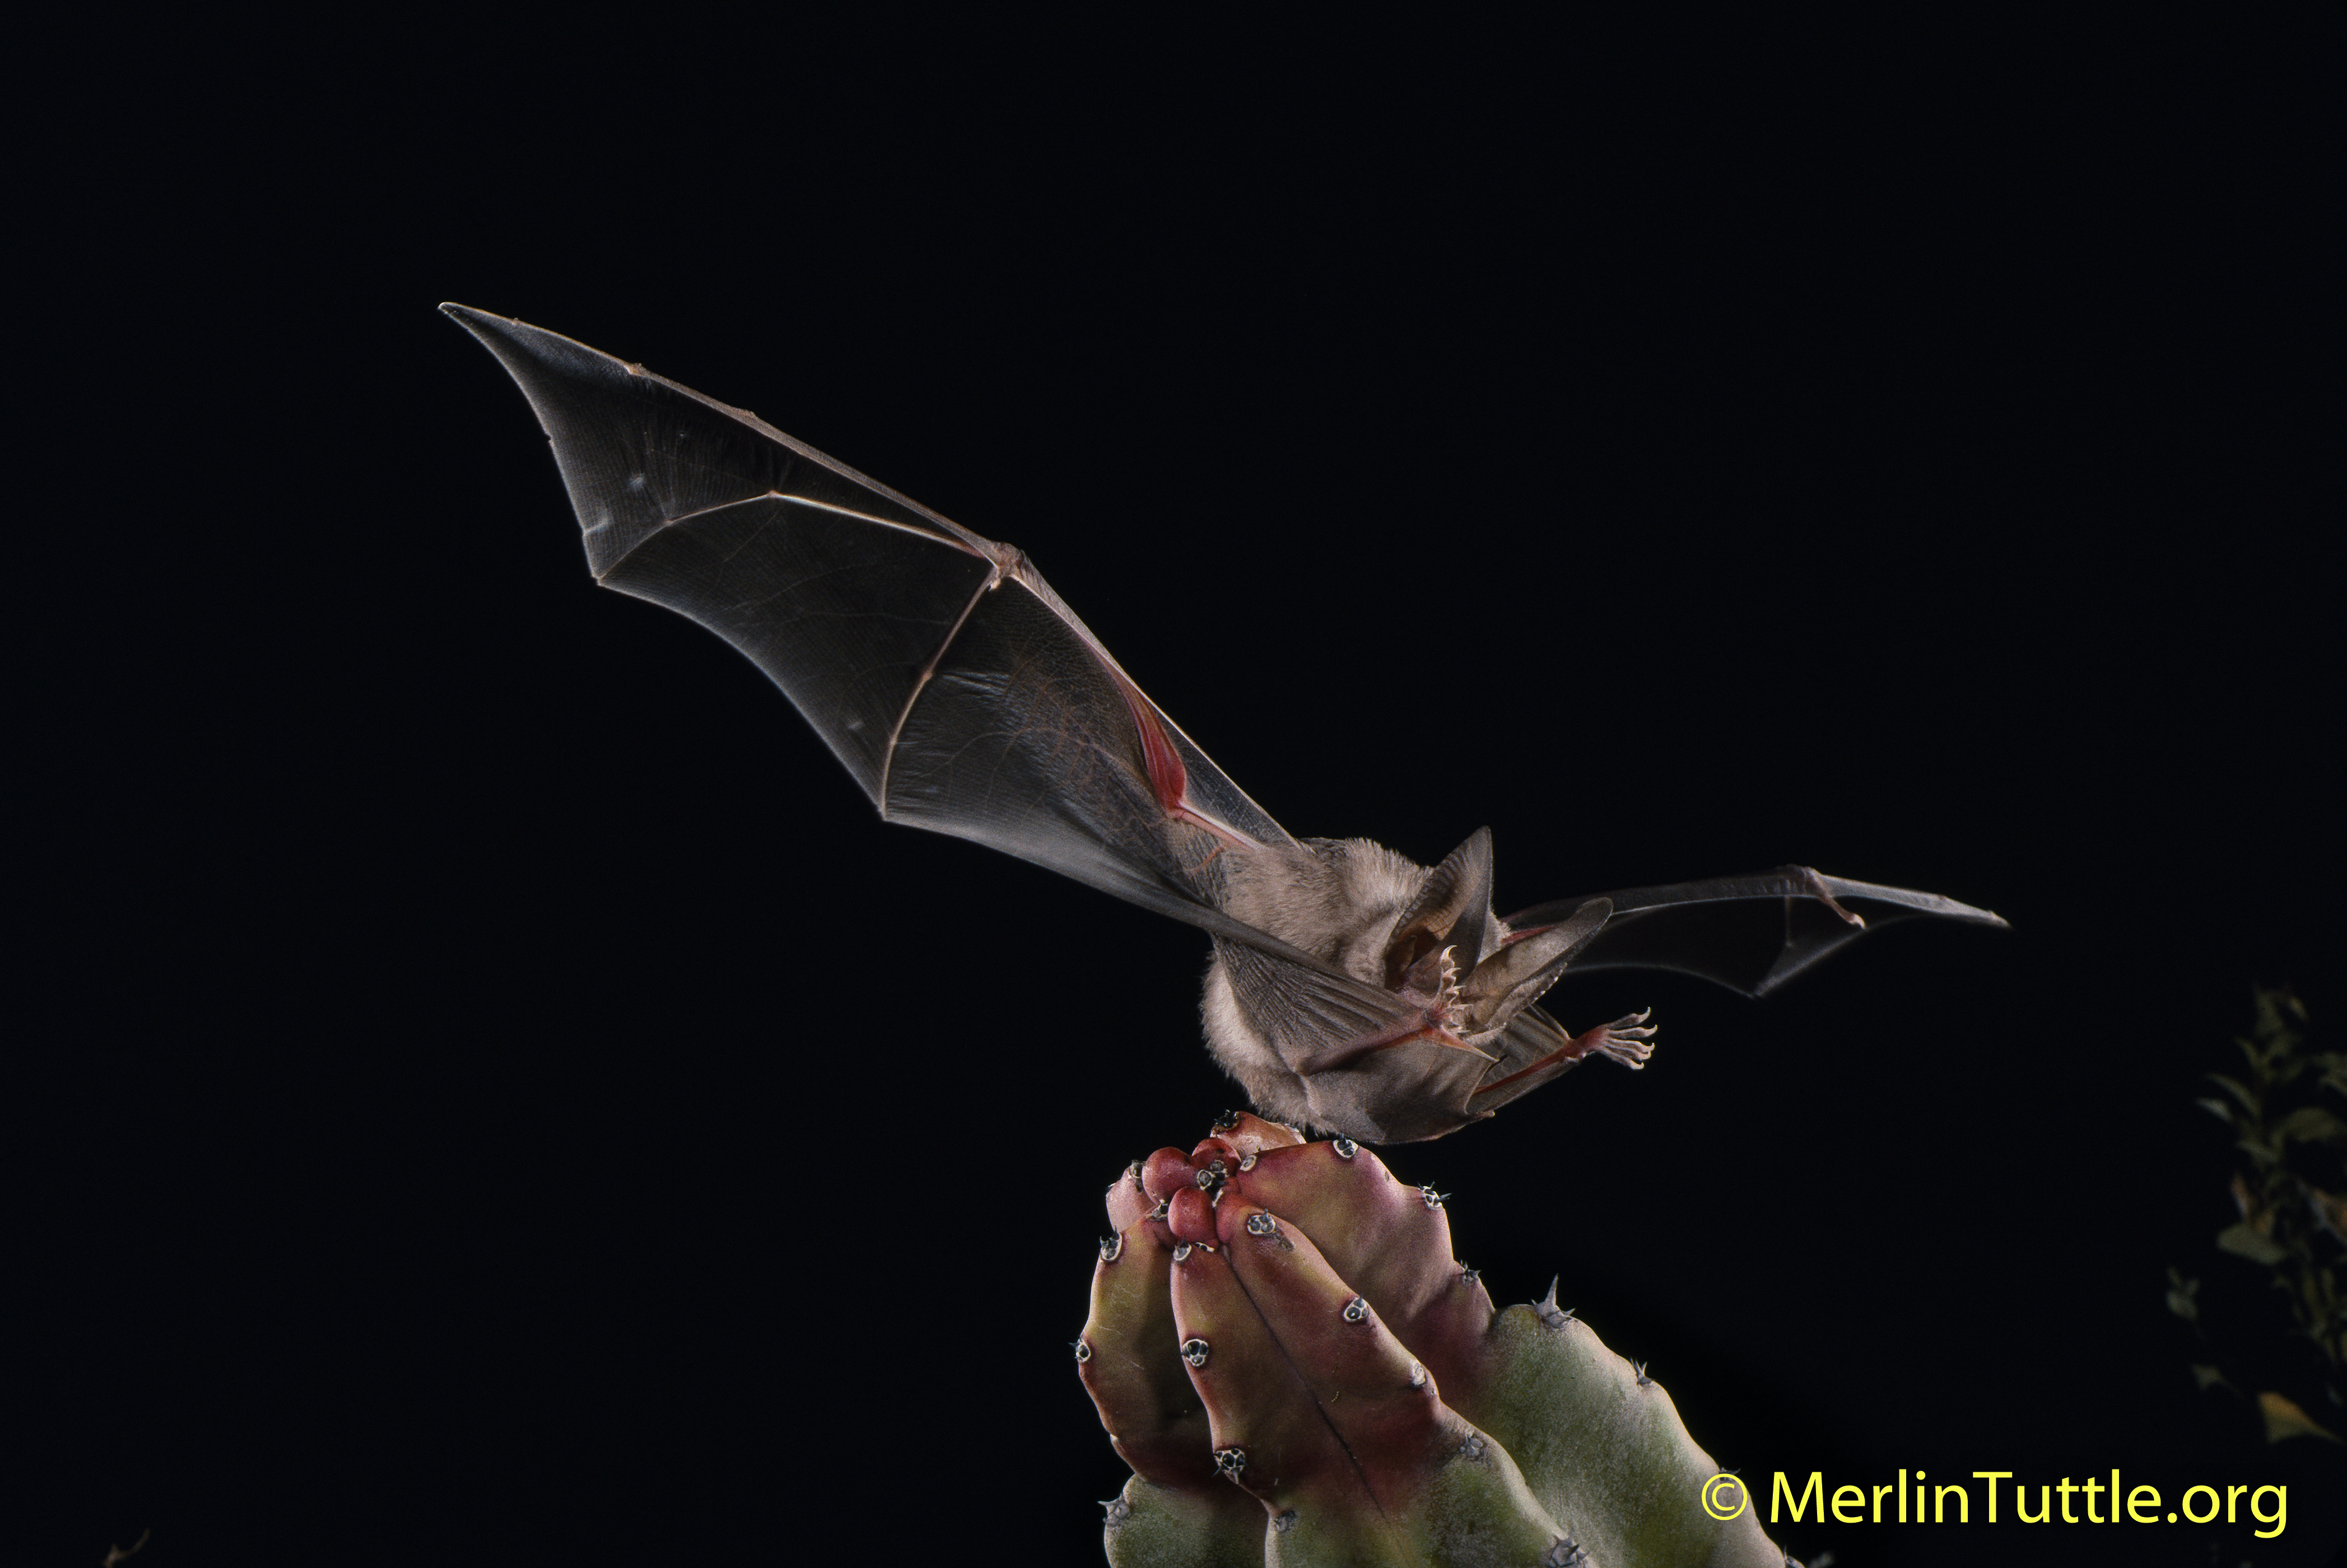 A California Leaf Nosed Bat Macrotus Californicus Catching Cricket In Mexico